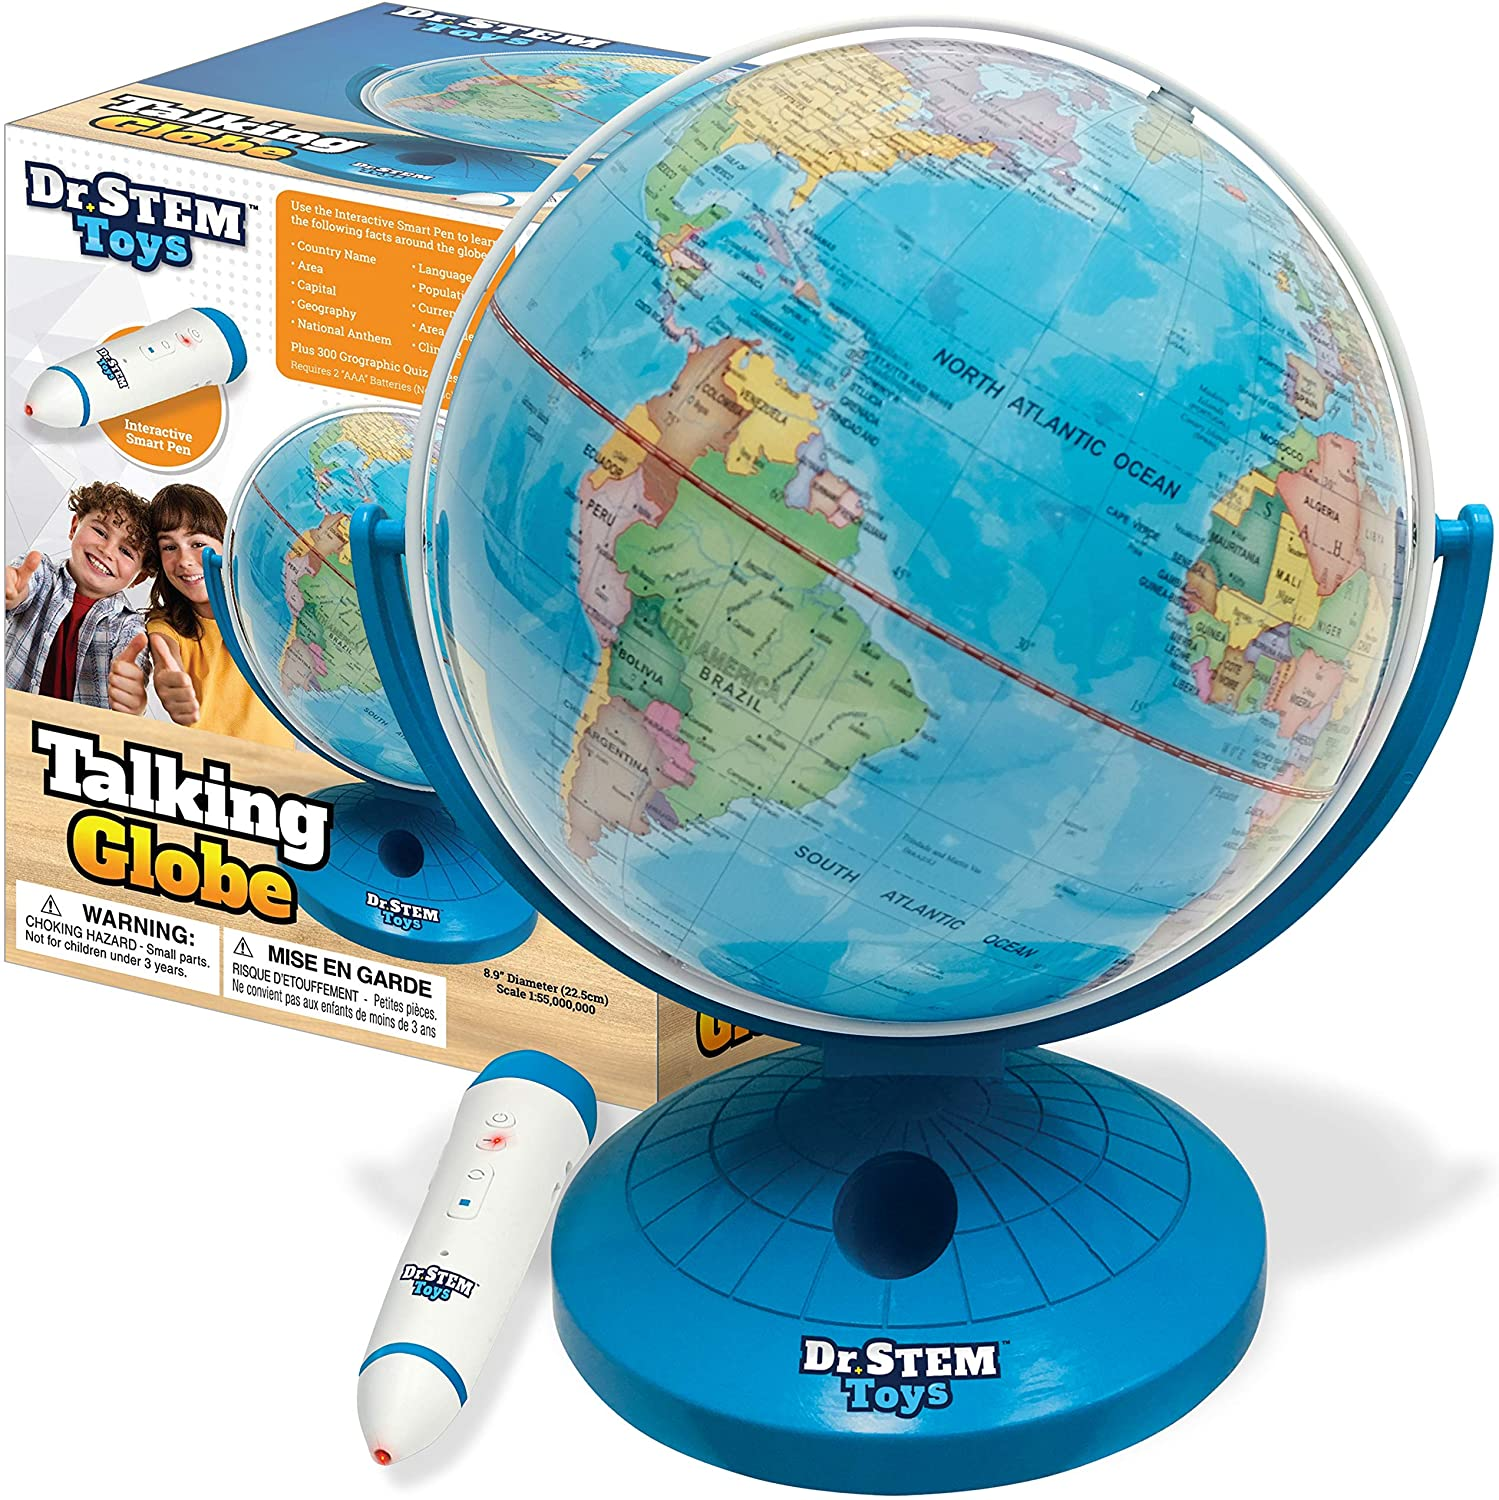 Dr. STEM Toys Talking World Globe with Interactive Stylus Pen and Stand, Colorful Map for Early Learning and Teaching - Includes Trivia, Q&A, and Music - 9 Inches in Height, Ages 6+